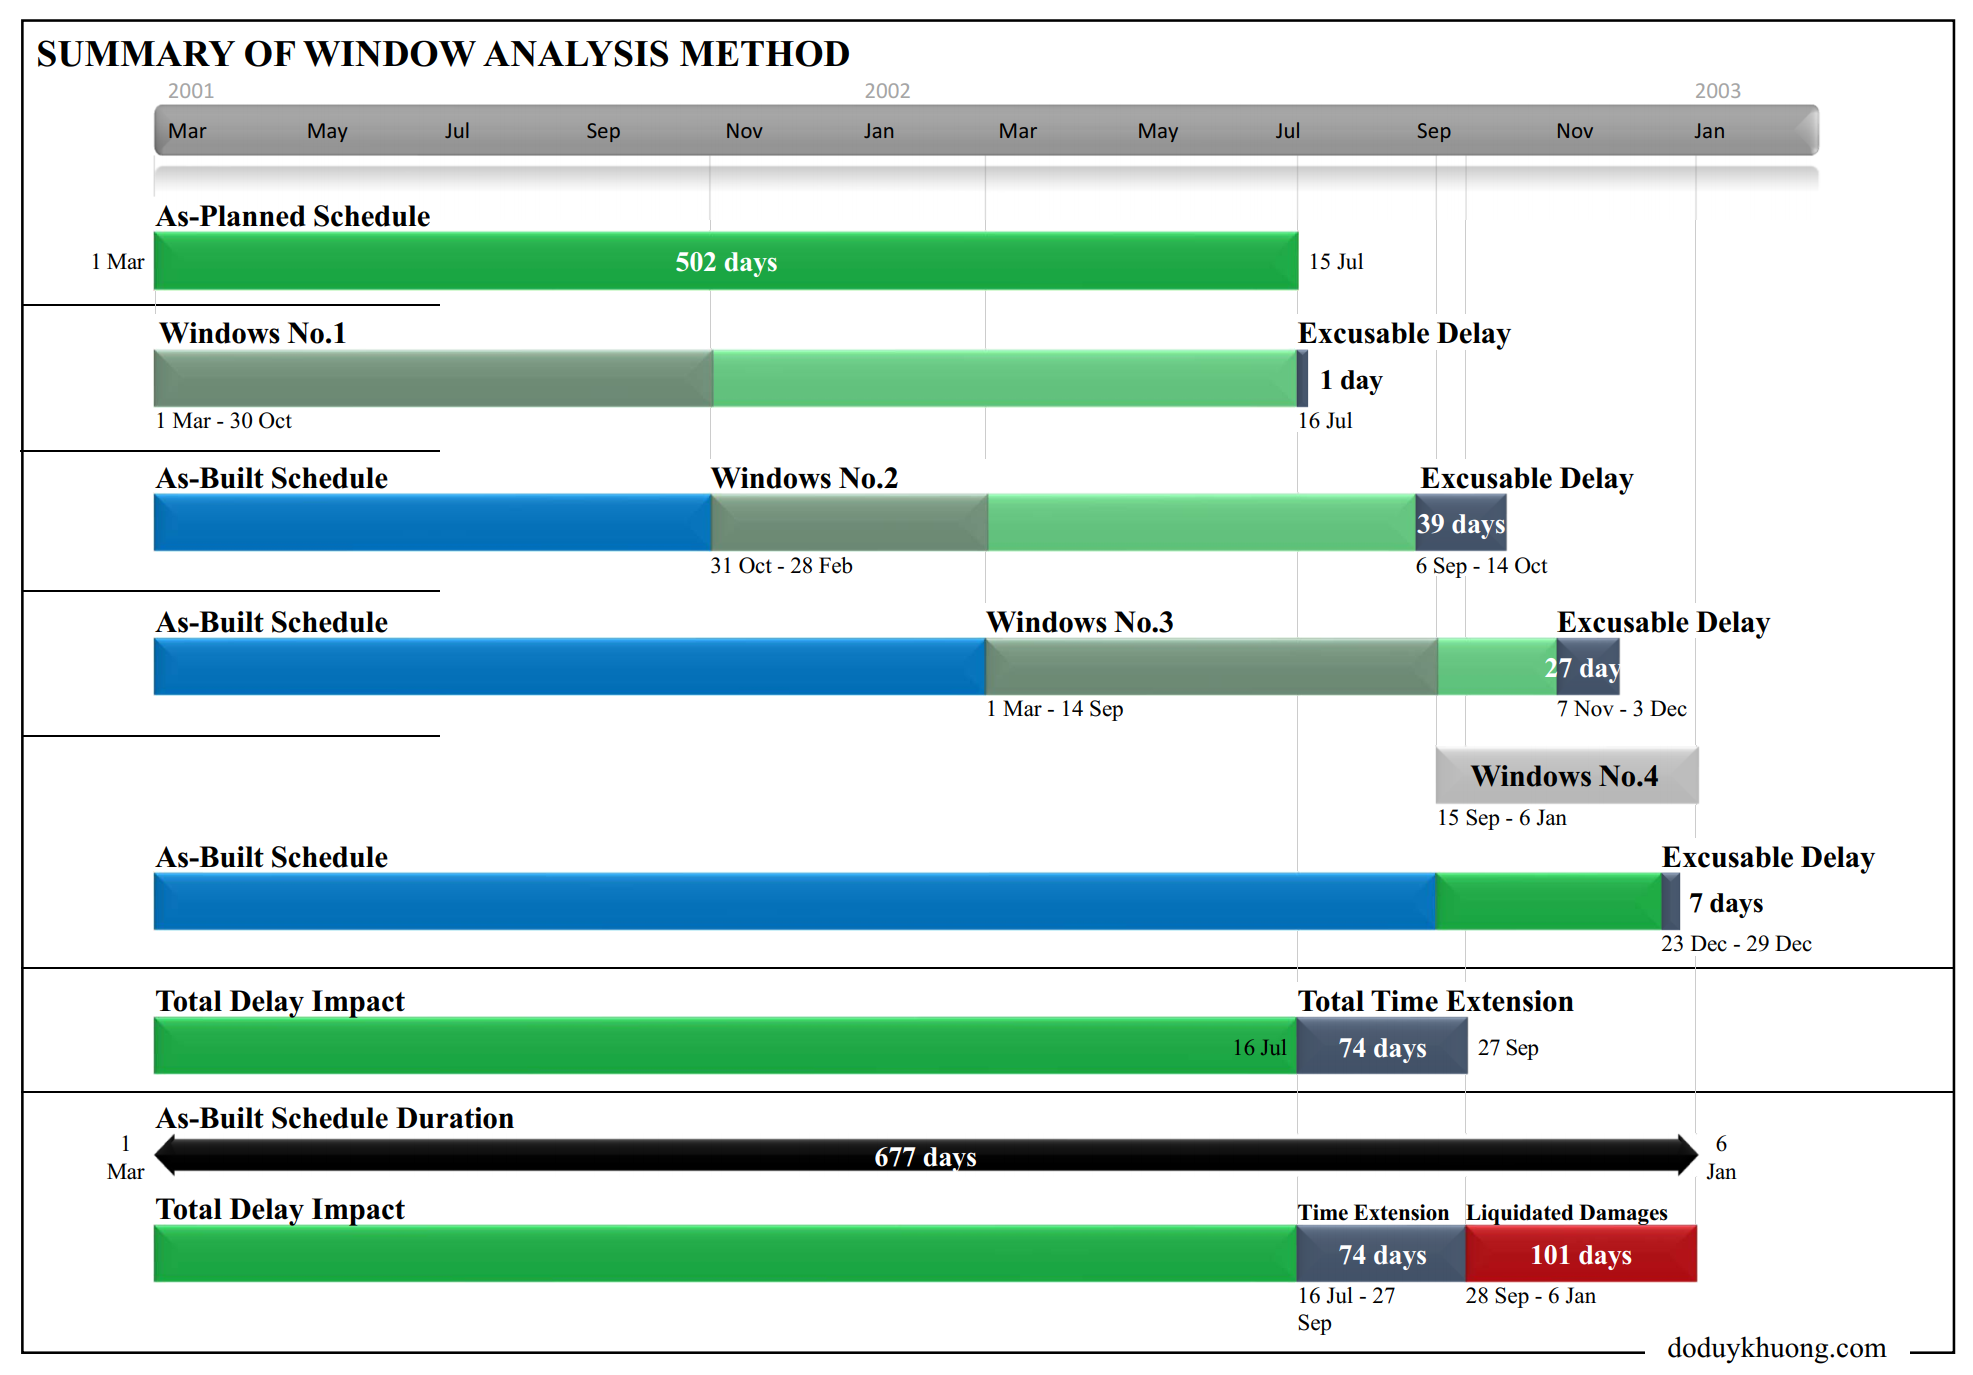 Forensic Delay Schedule Analysis - Summary Graphic Report-2-Time Impact Analysis, Window Analysis